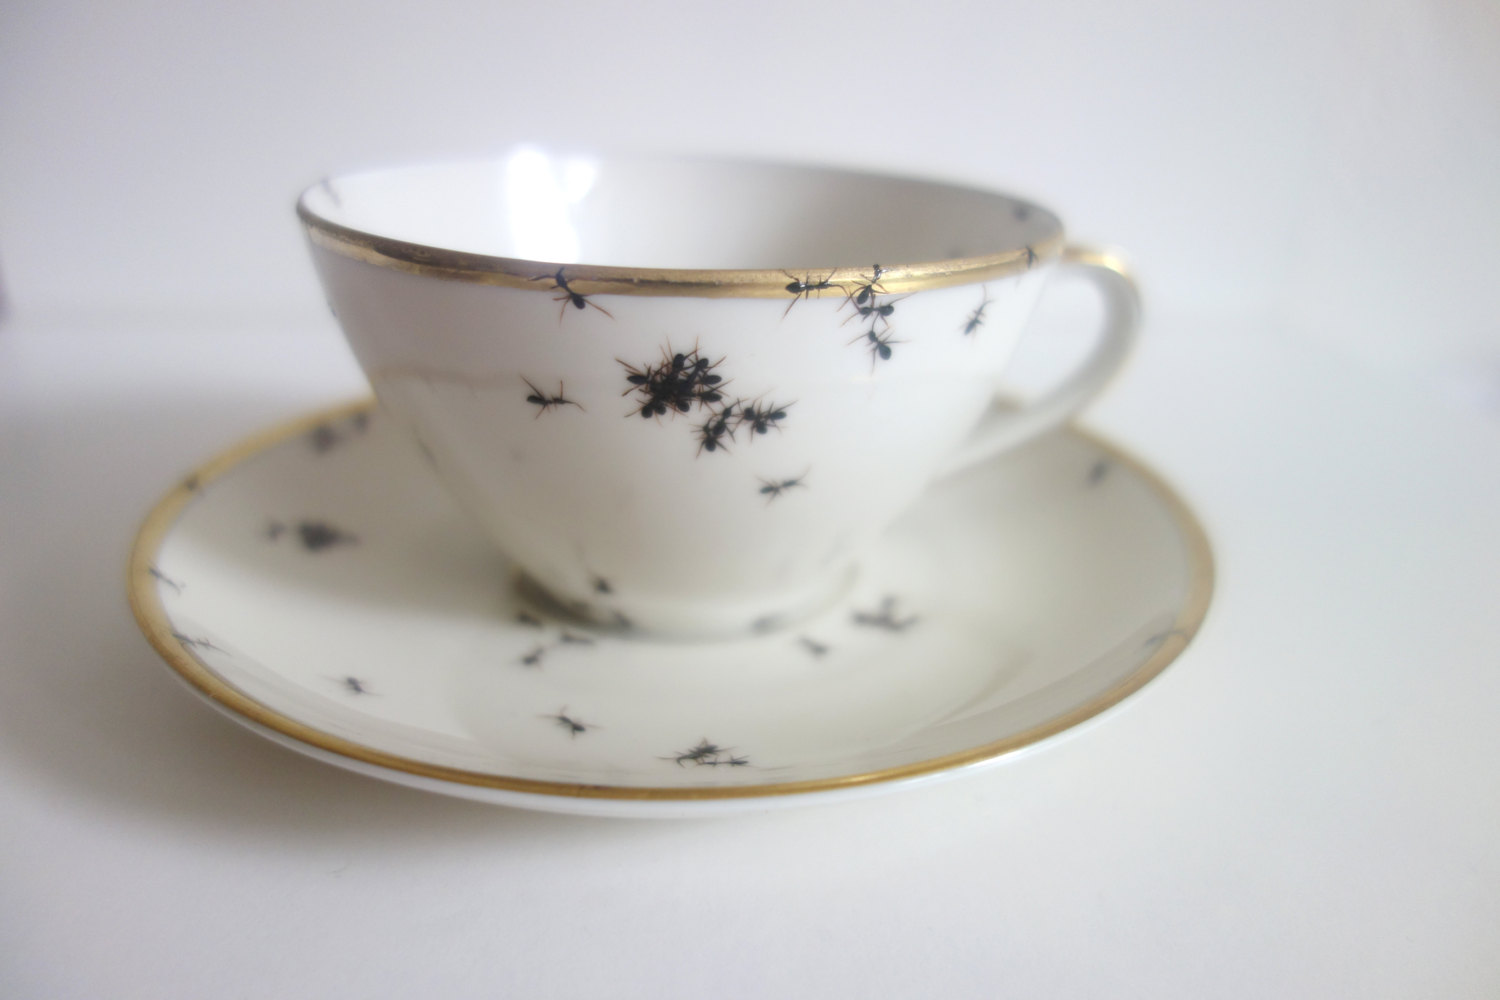 Teacup - Hand Painted Porcelain by La Philie - Evelyn Bracklow